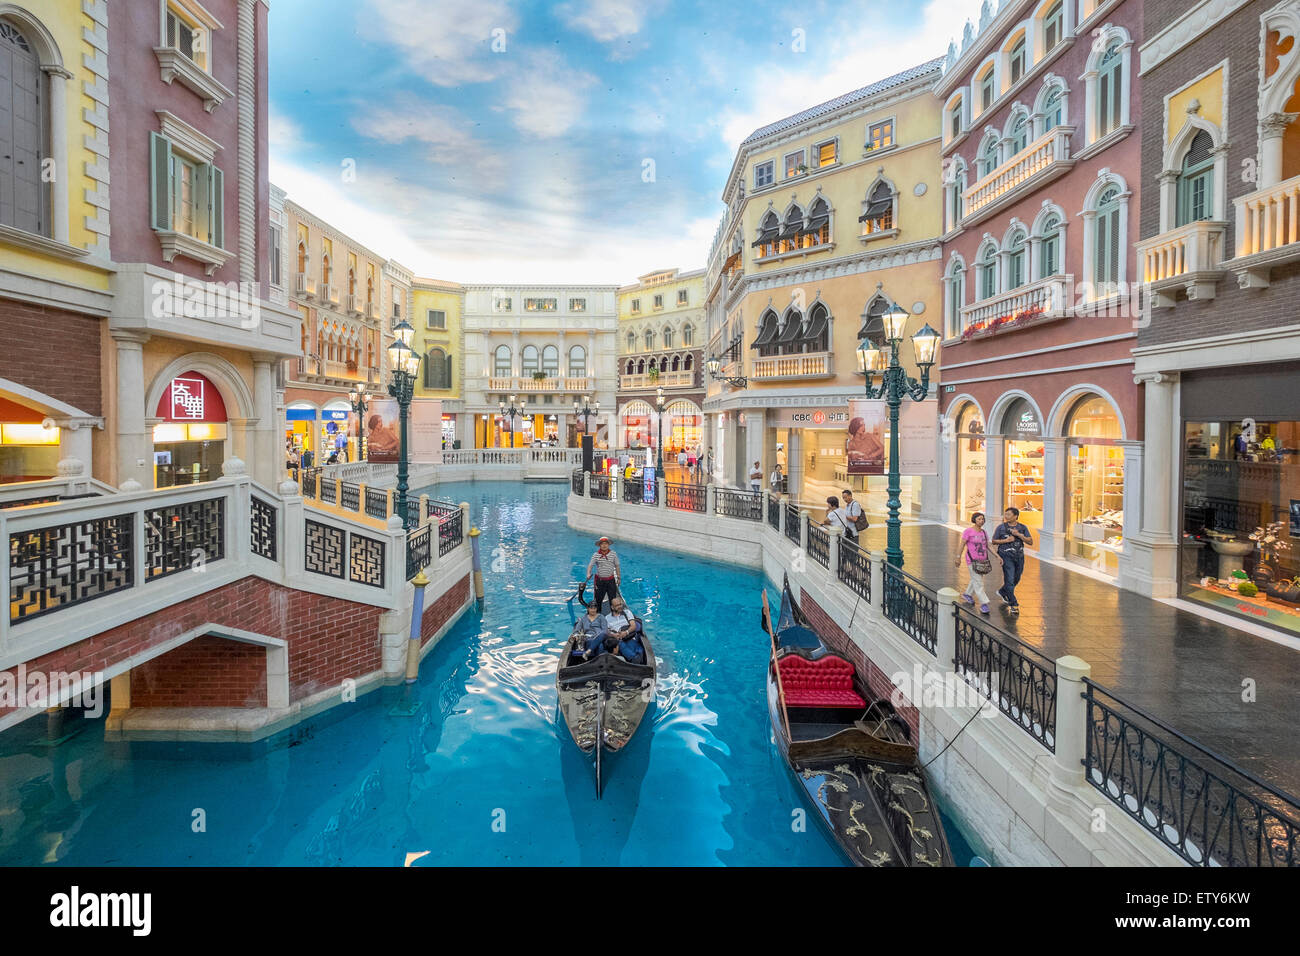 Canal and gondola on canal inside the venetian macao casino and canal and gondola on canal inside the venetian macao casino and hotel in macau china altavistaventures Images